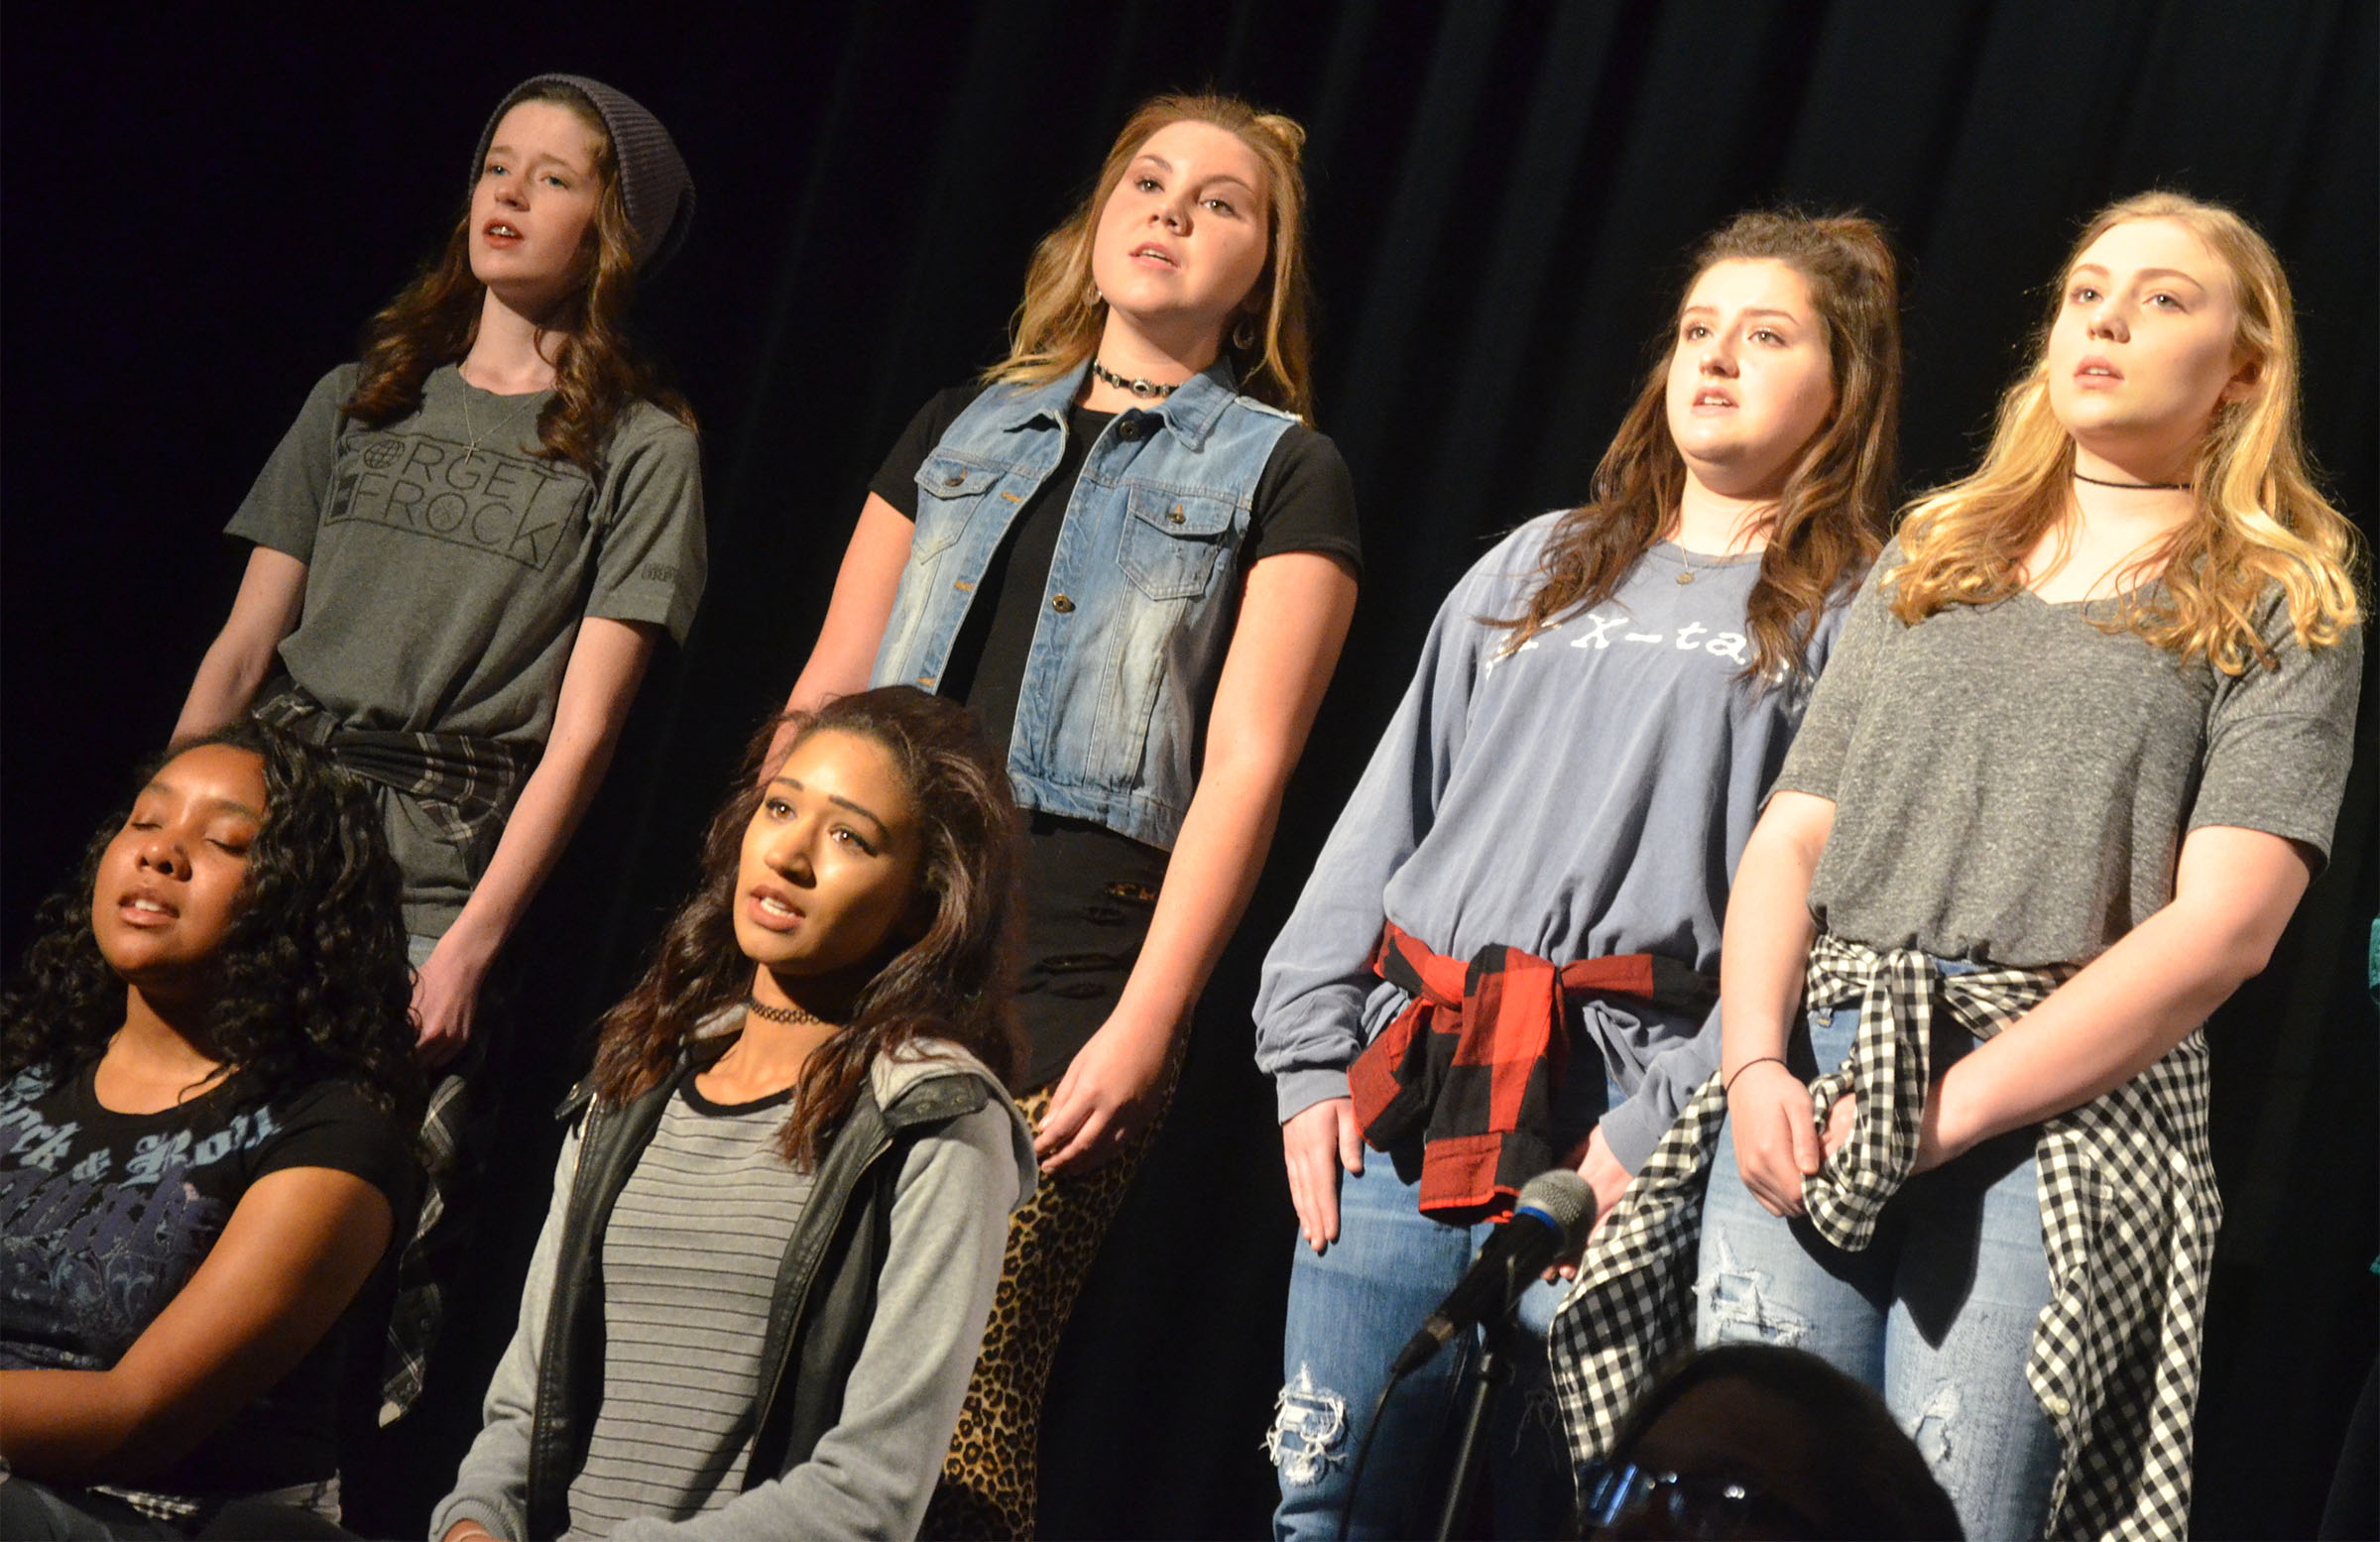 CHS show choir members perform. From left, front, are seniors Kayla Atkinson and Alexis Shears. Back, freshmen Gracyne Hash, Lauryn Agathen, Alli Wilson and Bailey Smith.